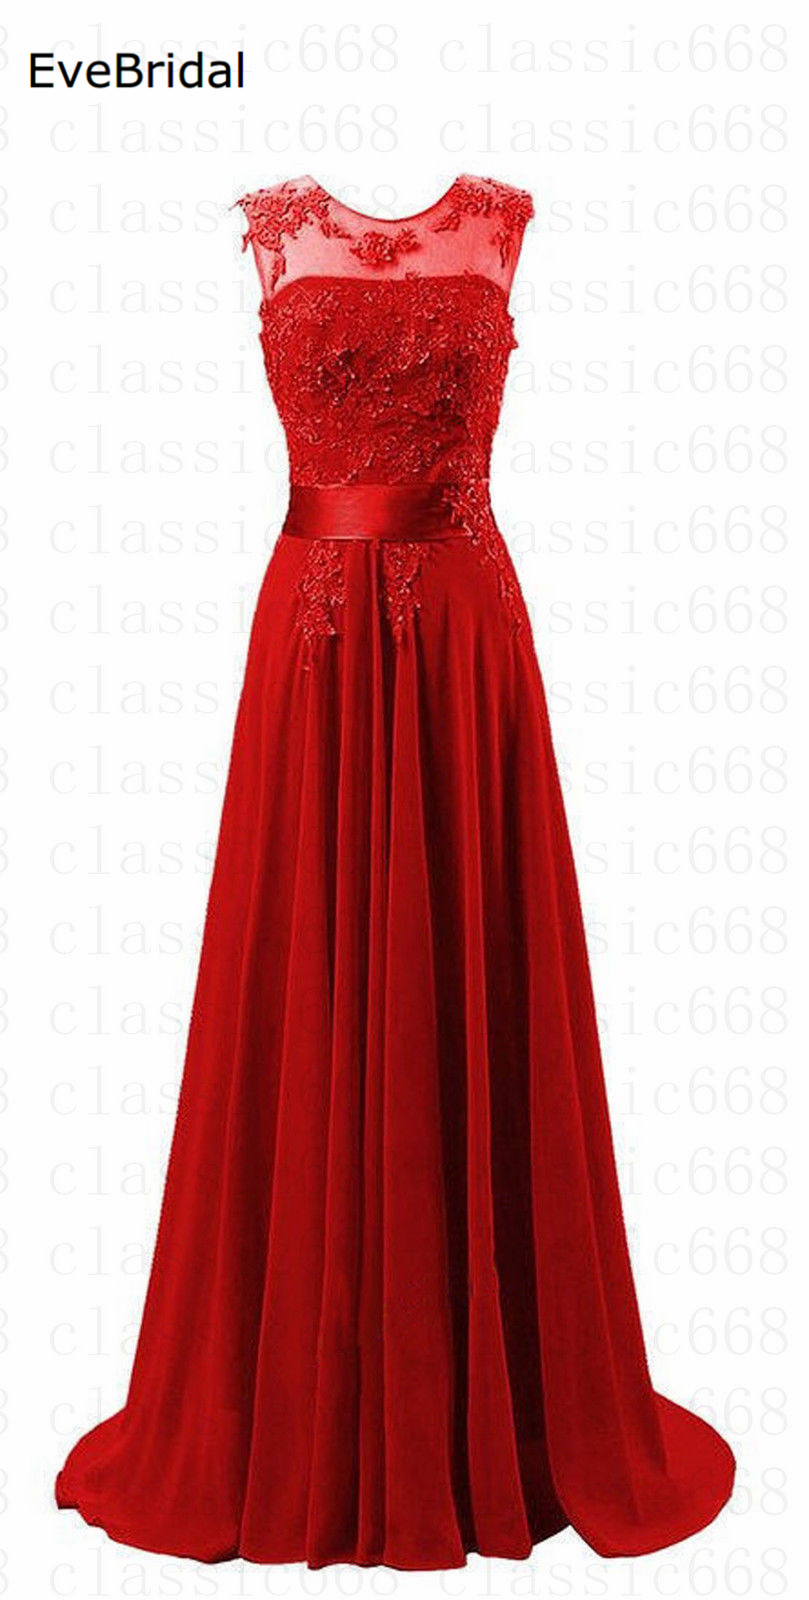 s-l1600 (15)-red